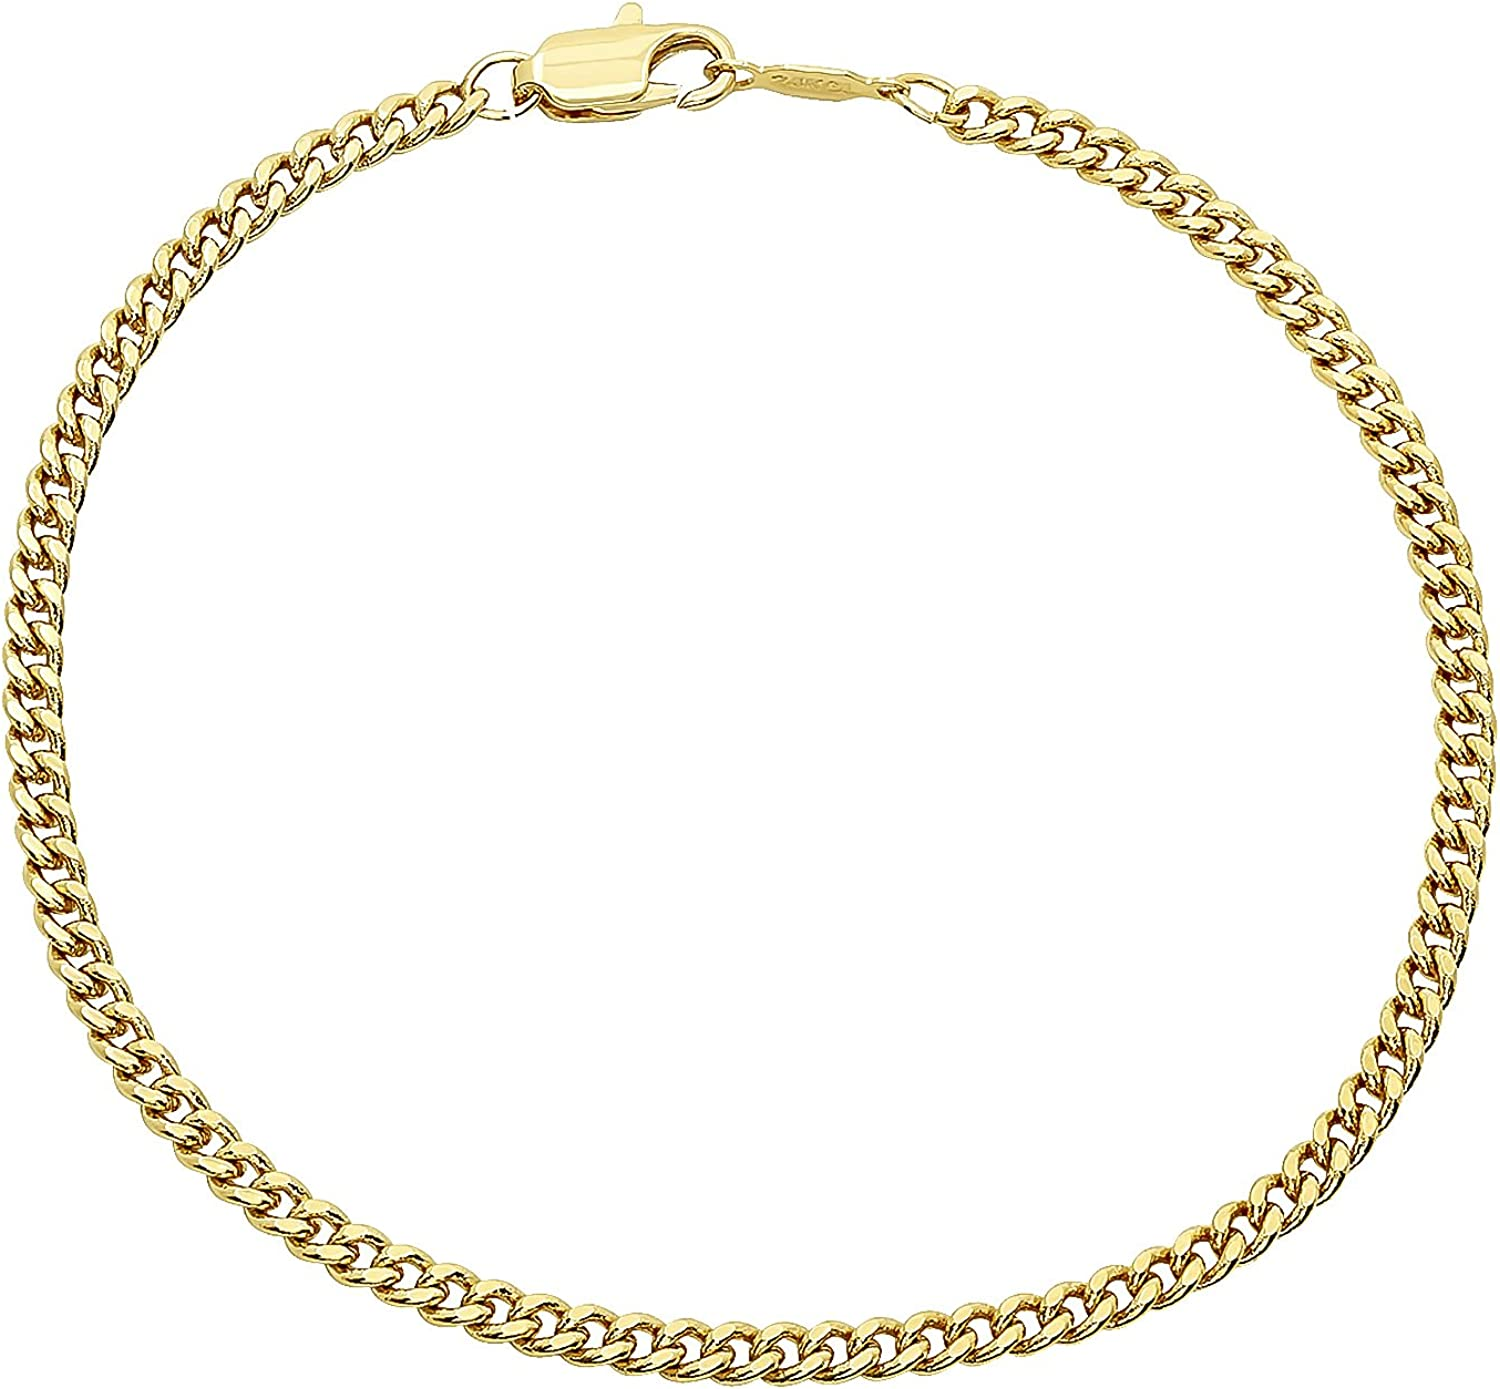 The Bling Factory 2.2mm 24kt Gold Plated Cuban Link Curb Bracelet